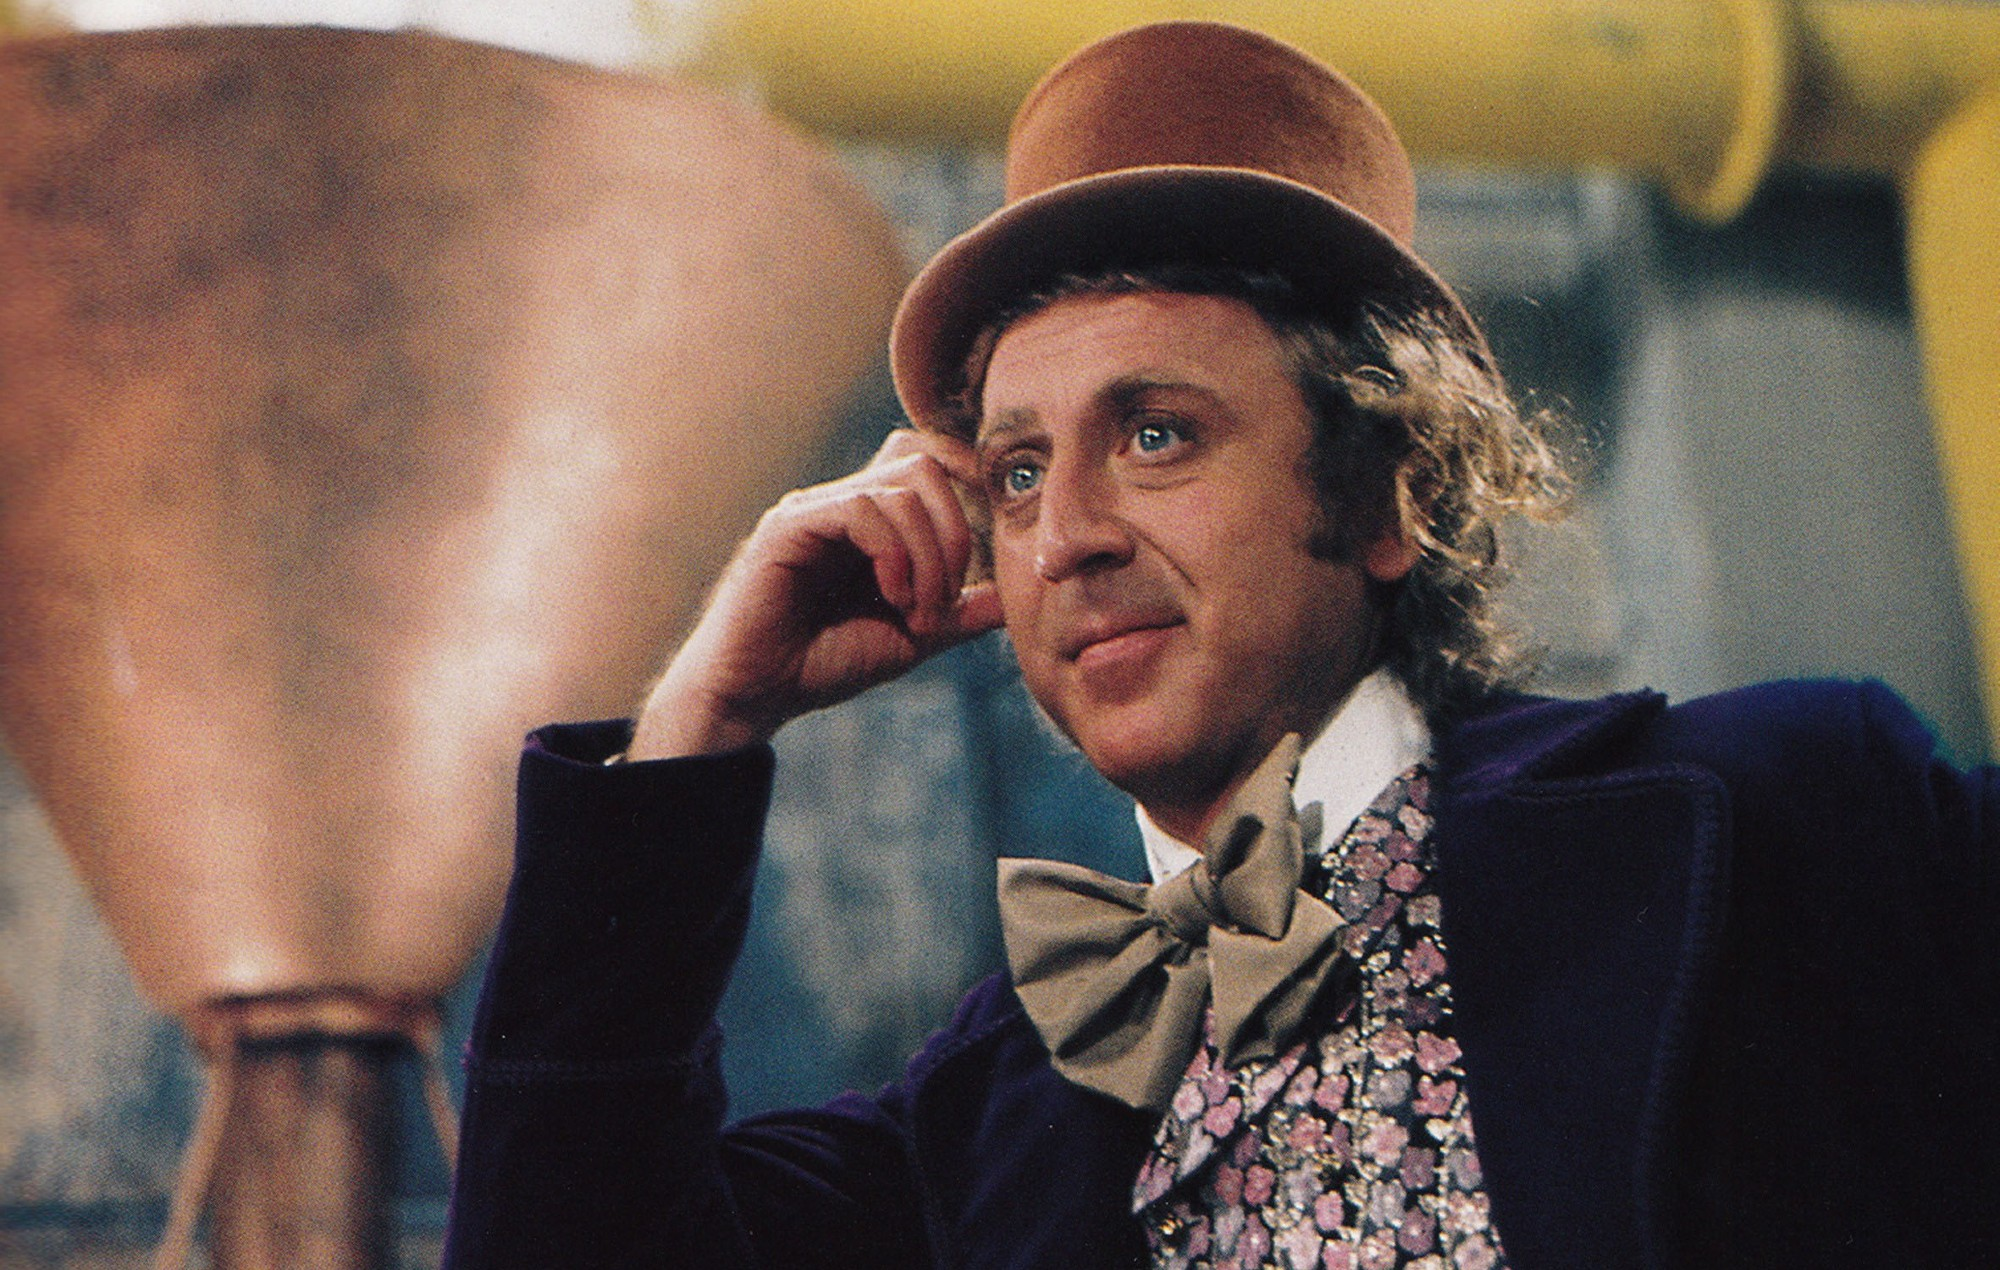 Gene Wilder as Willy Wonka in 'Willy Wonka and the Chocolate Factory'